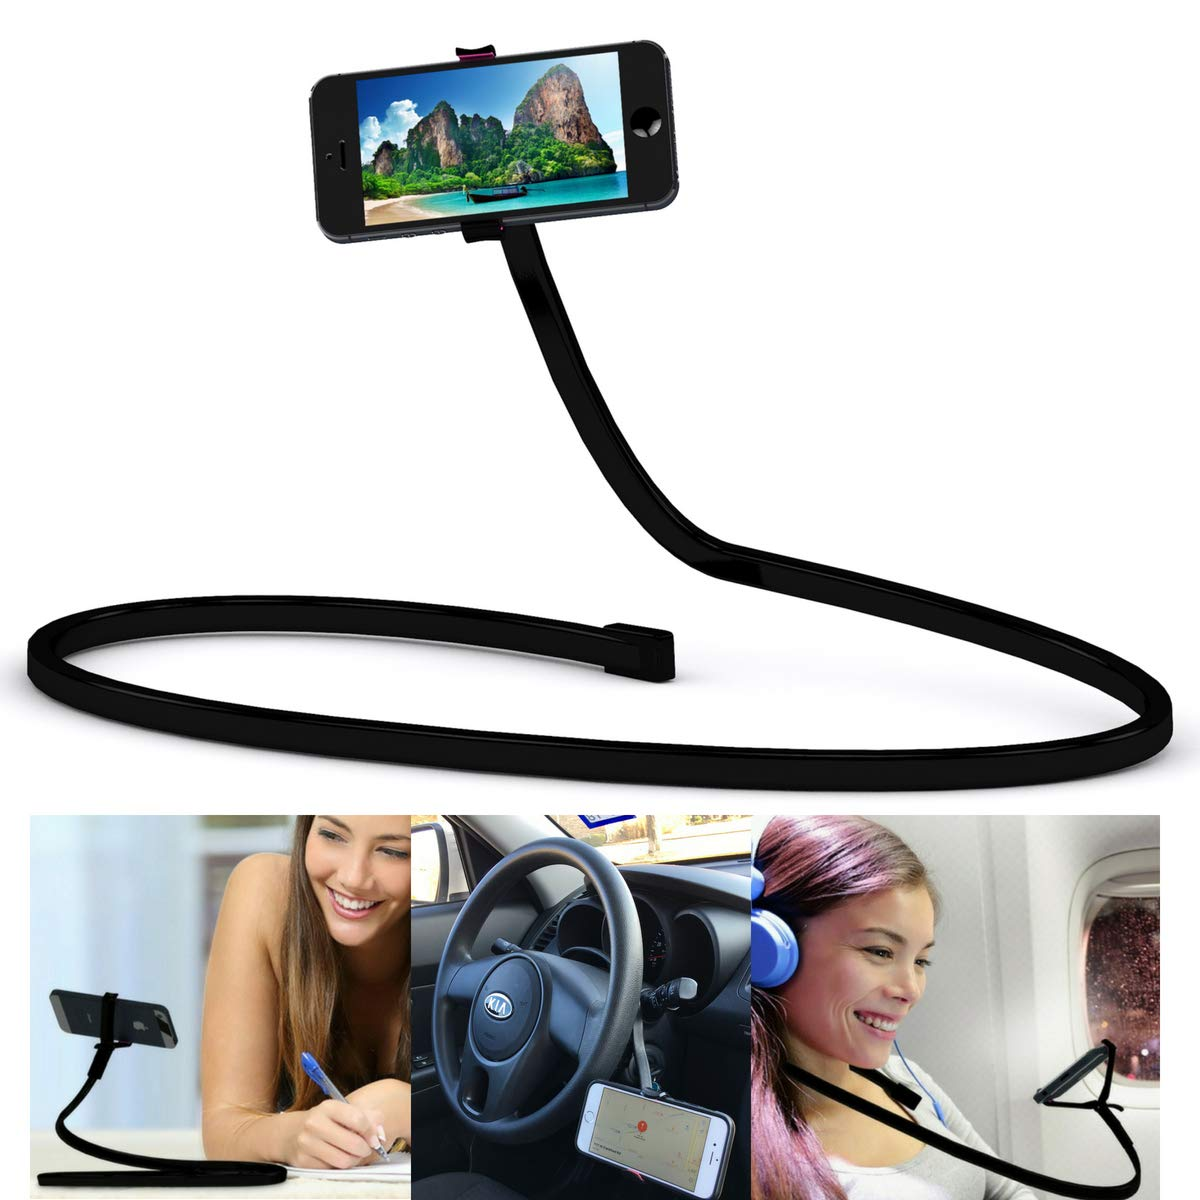 Geekx Cell Phone Holder, iPhone Stand - More Versatile Than a Tripod. Lazy Neck Gooseneck Adjustable Arm, Removable Mount for Desk, Table or Bed. Universal Fit Apple, Samsung Galaxy. 360 Swivel.